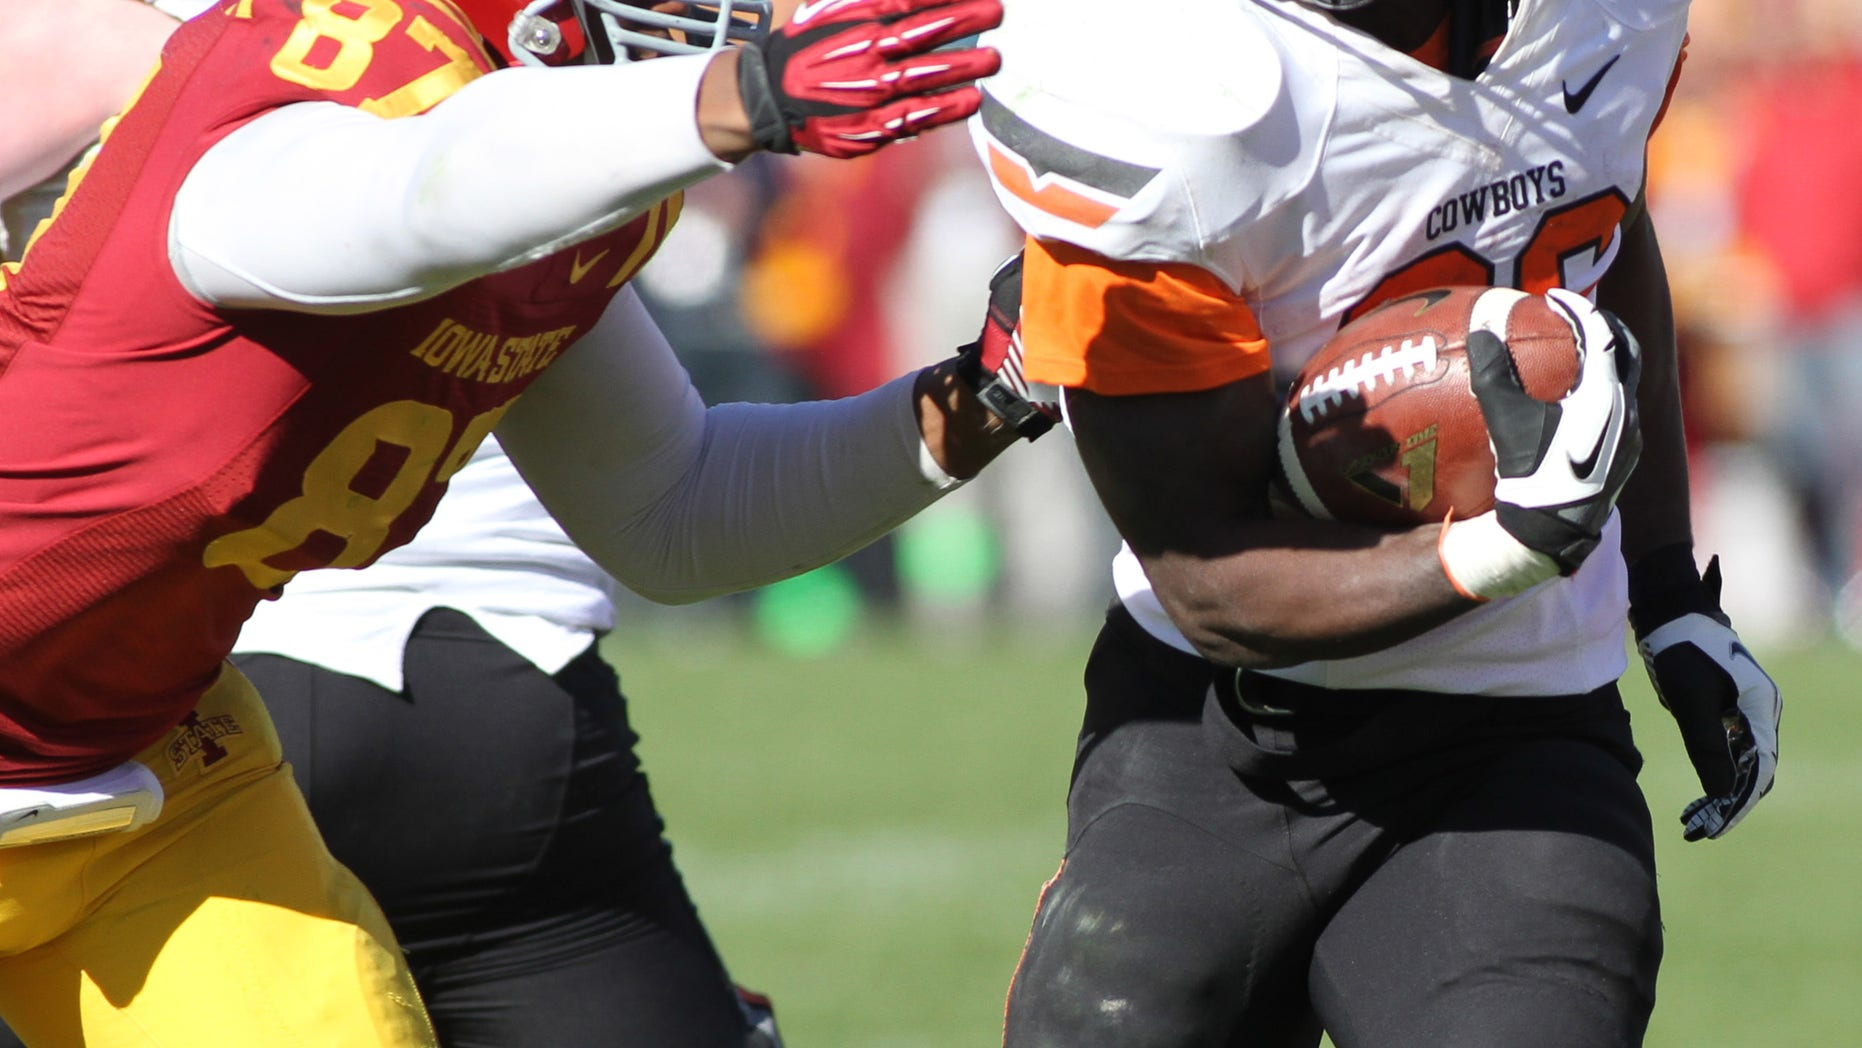 Oklahoma State running back Desmond Roland (26) breaks away from Iowa State defensive lineman David Irving (86) during the second half of an NCAA college football game in Ames, Iowa Saturday, Oct. 26, 2013. Oklahoma State won the game 58-27.(AP Photo by Justin Hayworth)